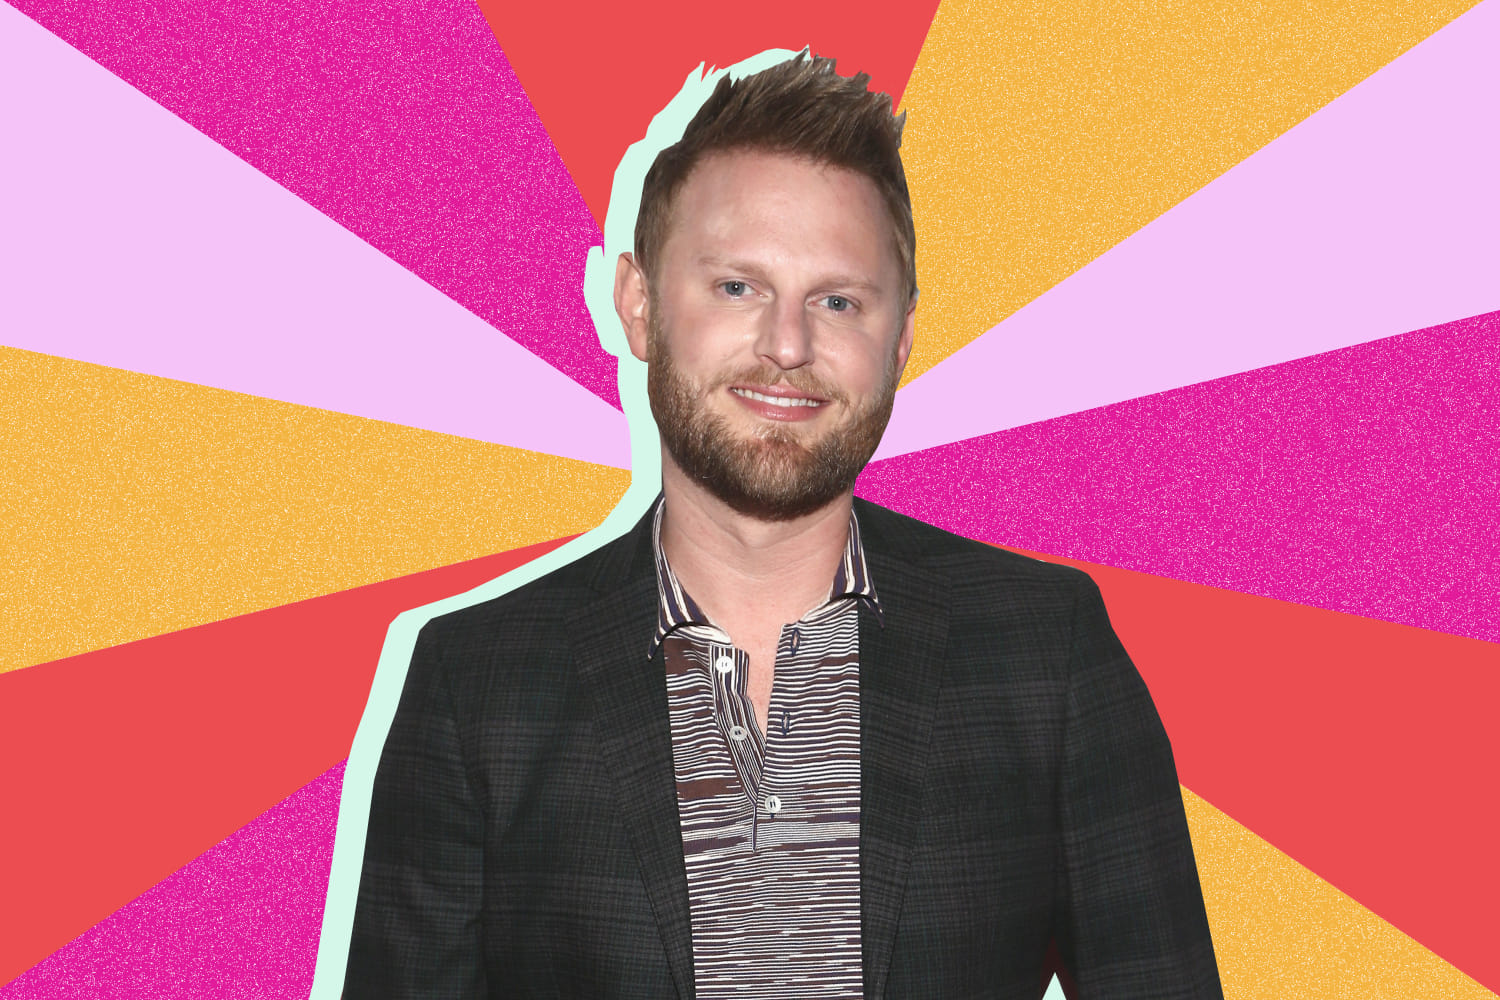 7 Things We Learned from Bobby Berk's New Lifestyle Site